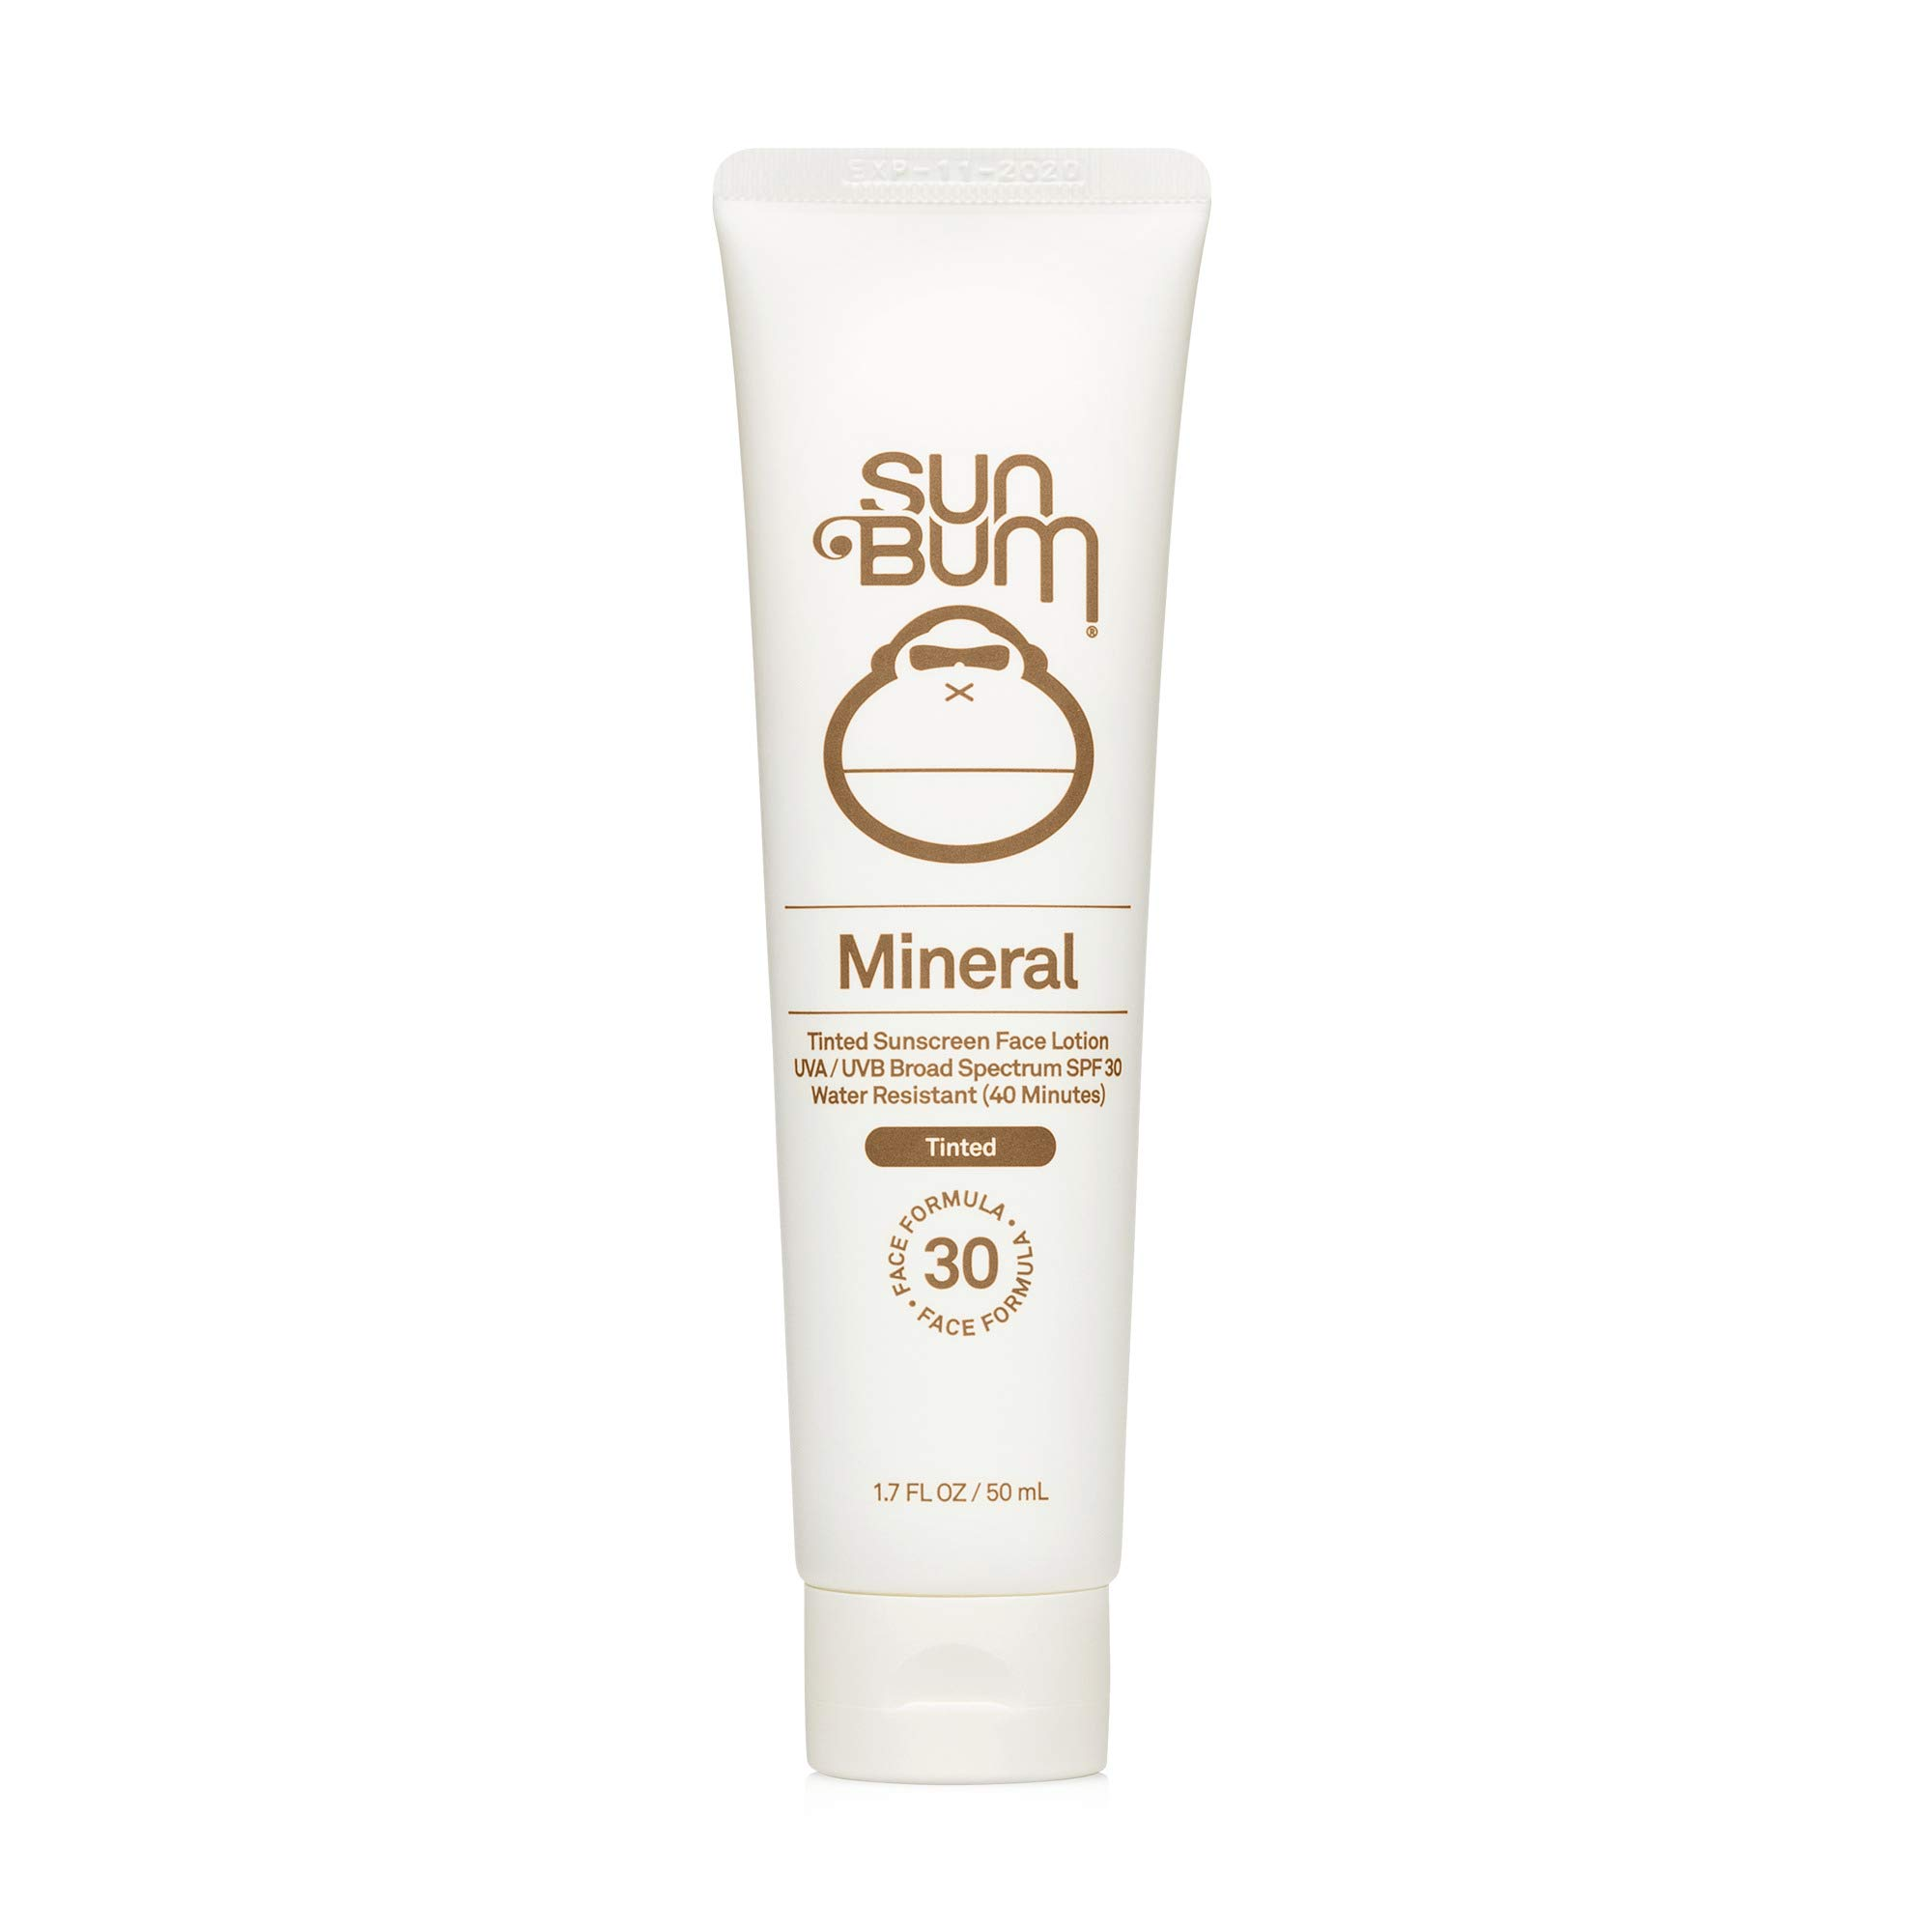 Sun Bum Mineral SPF 30 Tinted Sunscreen Face Lotion | Vegan and Reef Friendly (Octinoxate & Oxybenzone Free) Broad Spectrum Natural Sunscreen with UVA/UVB Protection | 1.7 oz